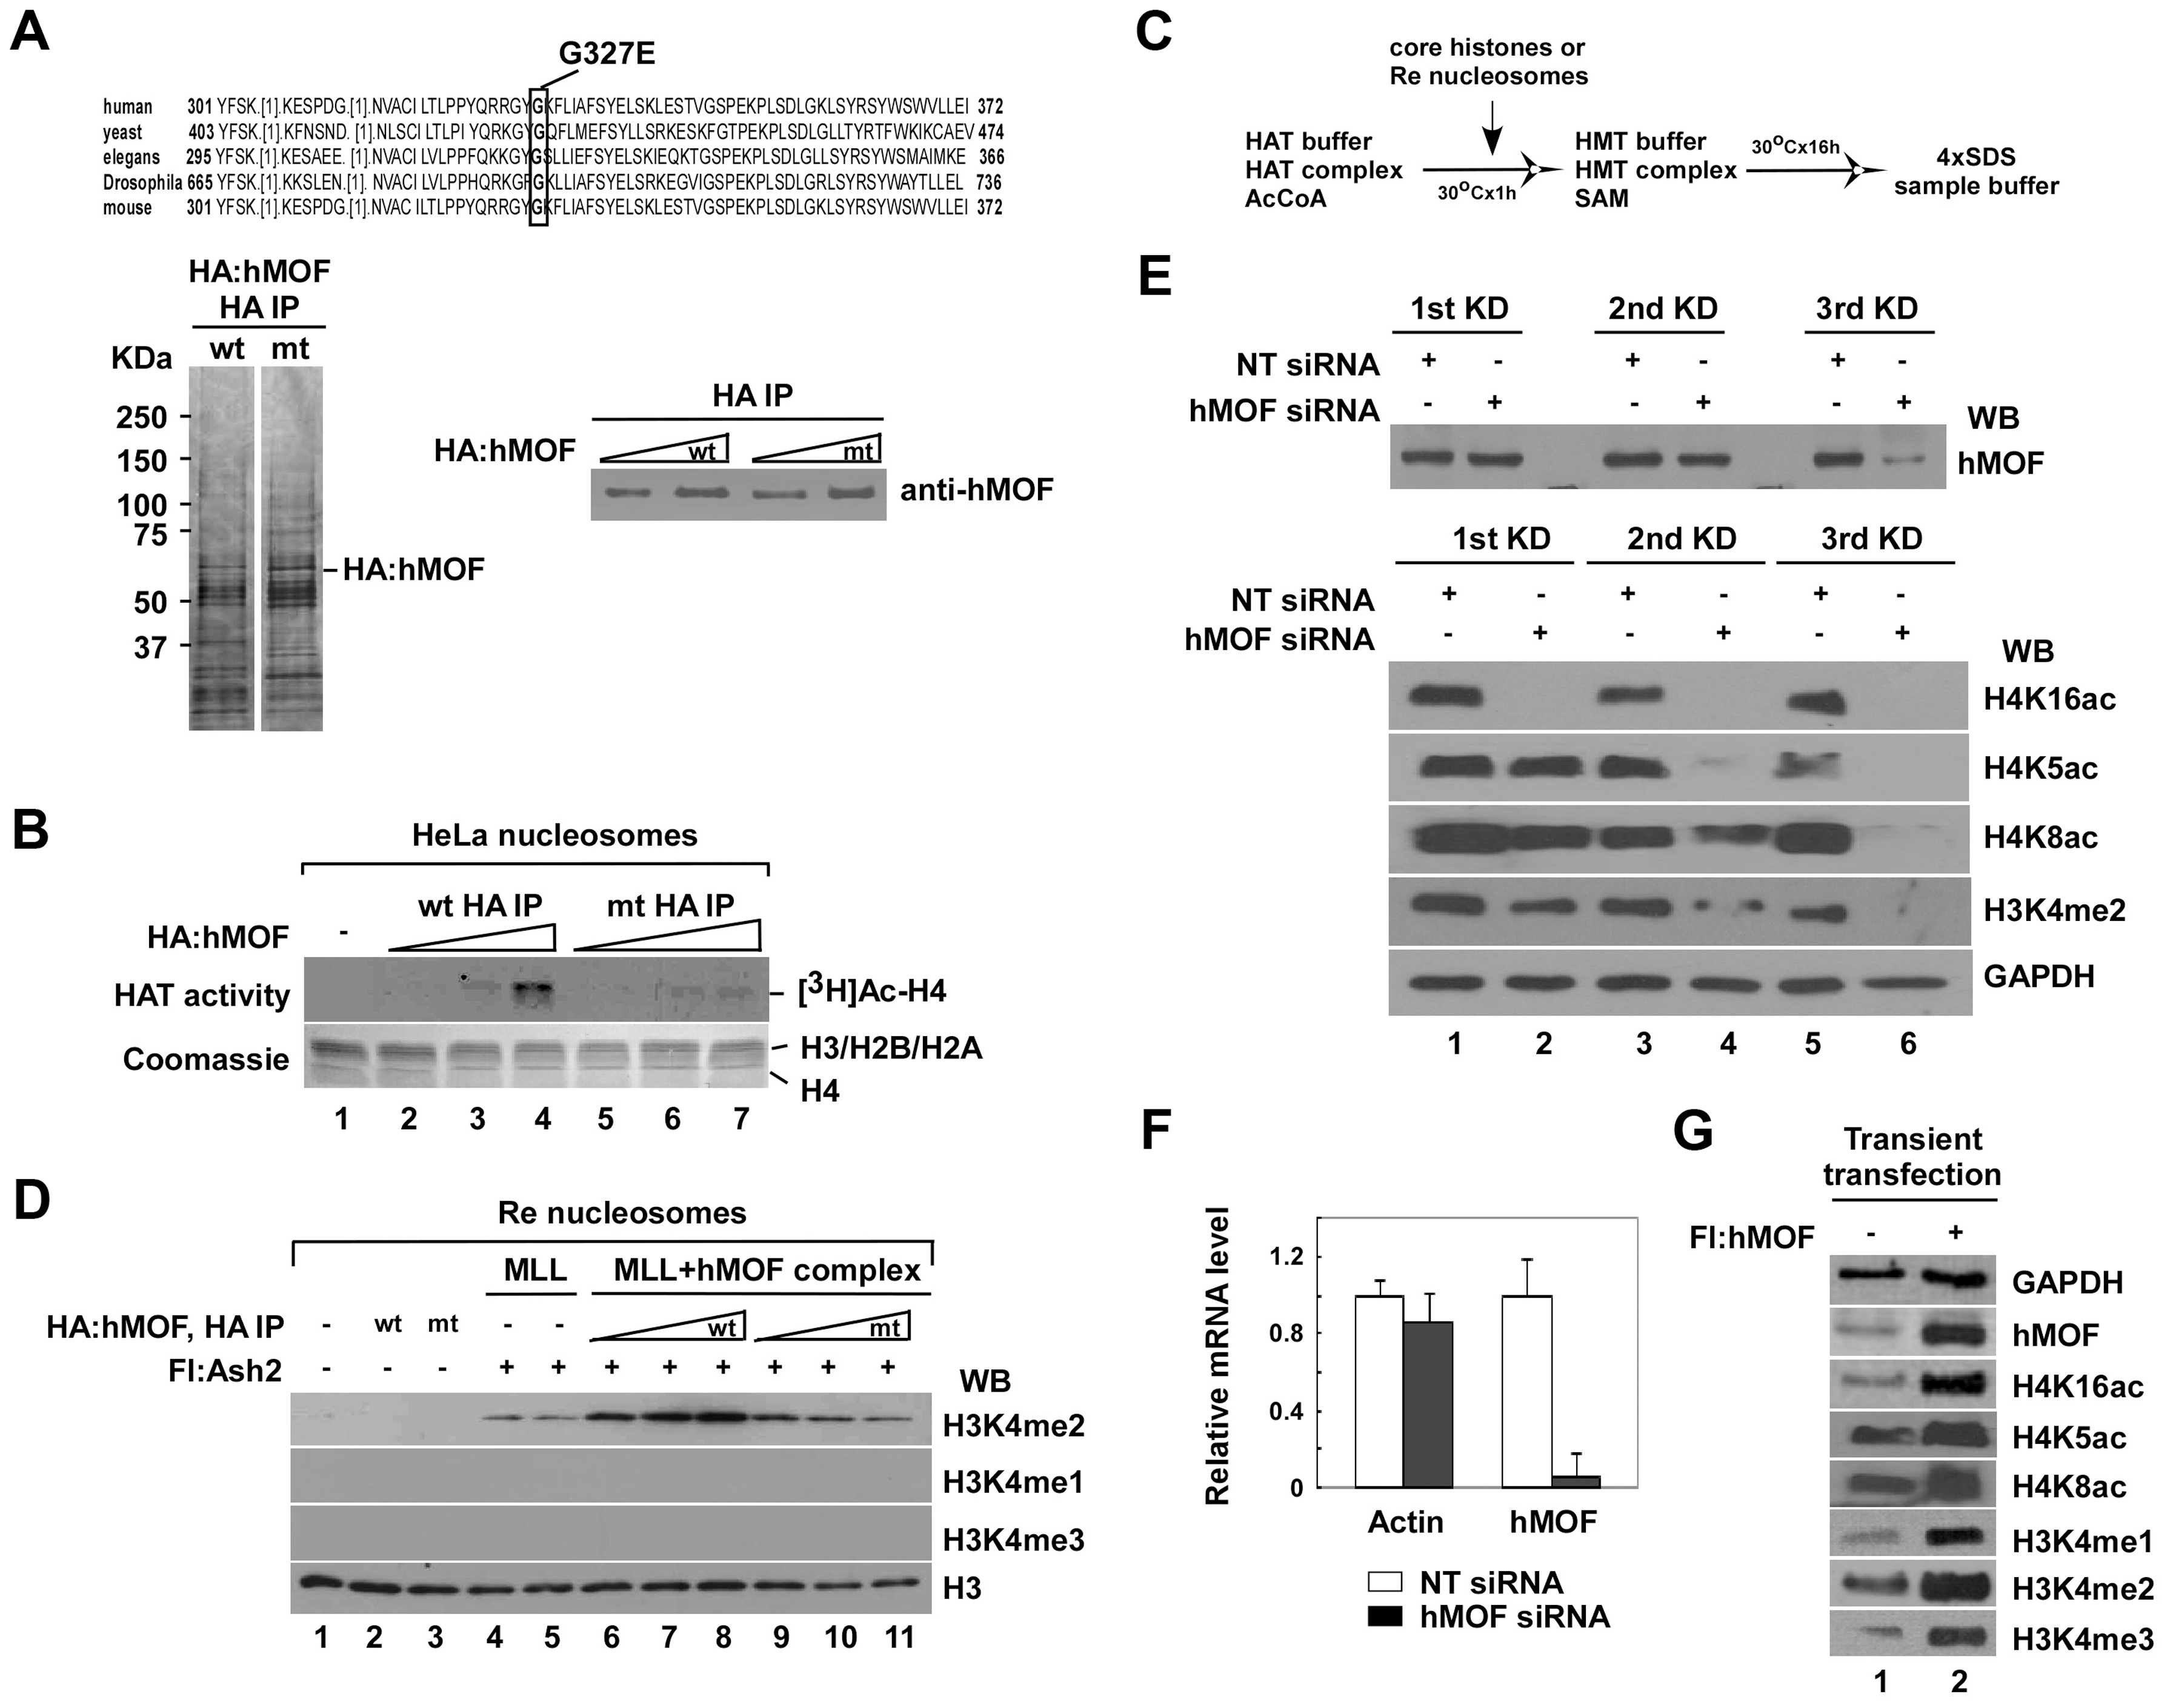 The activity of histone H3K4 methylation is facilitated by hMOF-containing complexes both <i>in vitro</i> and <i>in vivo</i>.